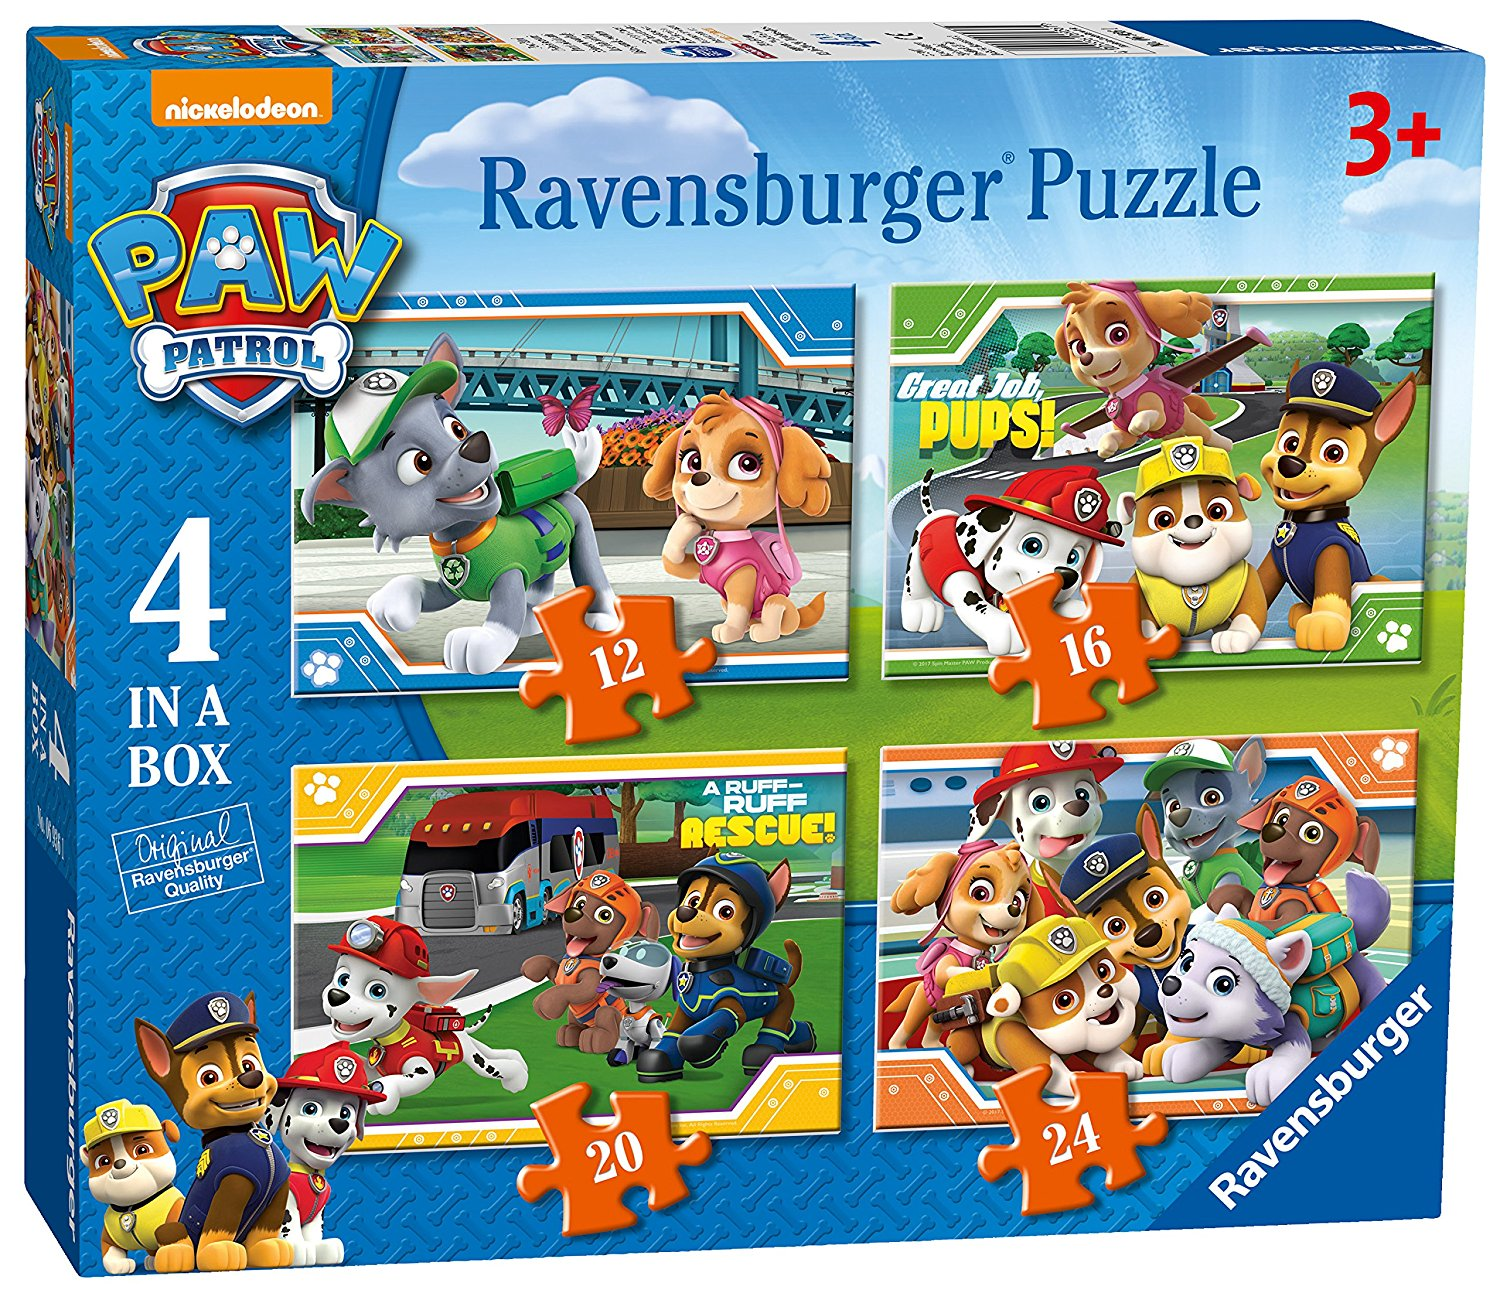 Paw Patrol 4 in Box, 12pc, 16pc, 20pc & 24pc